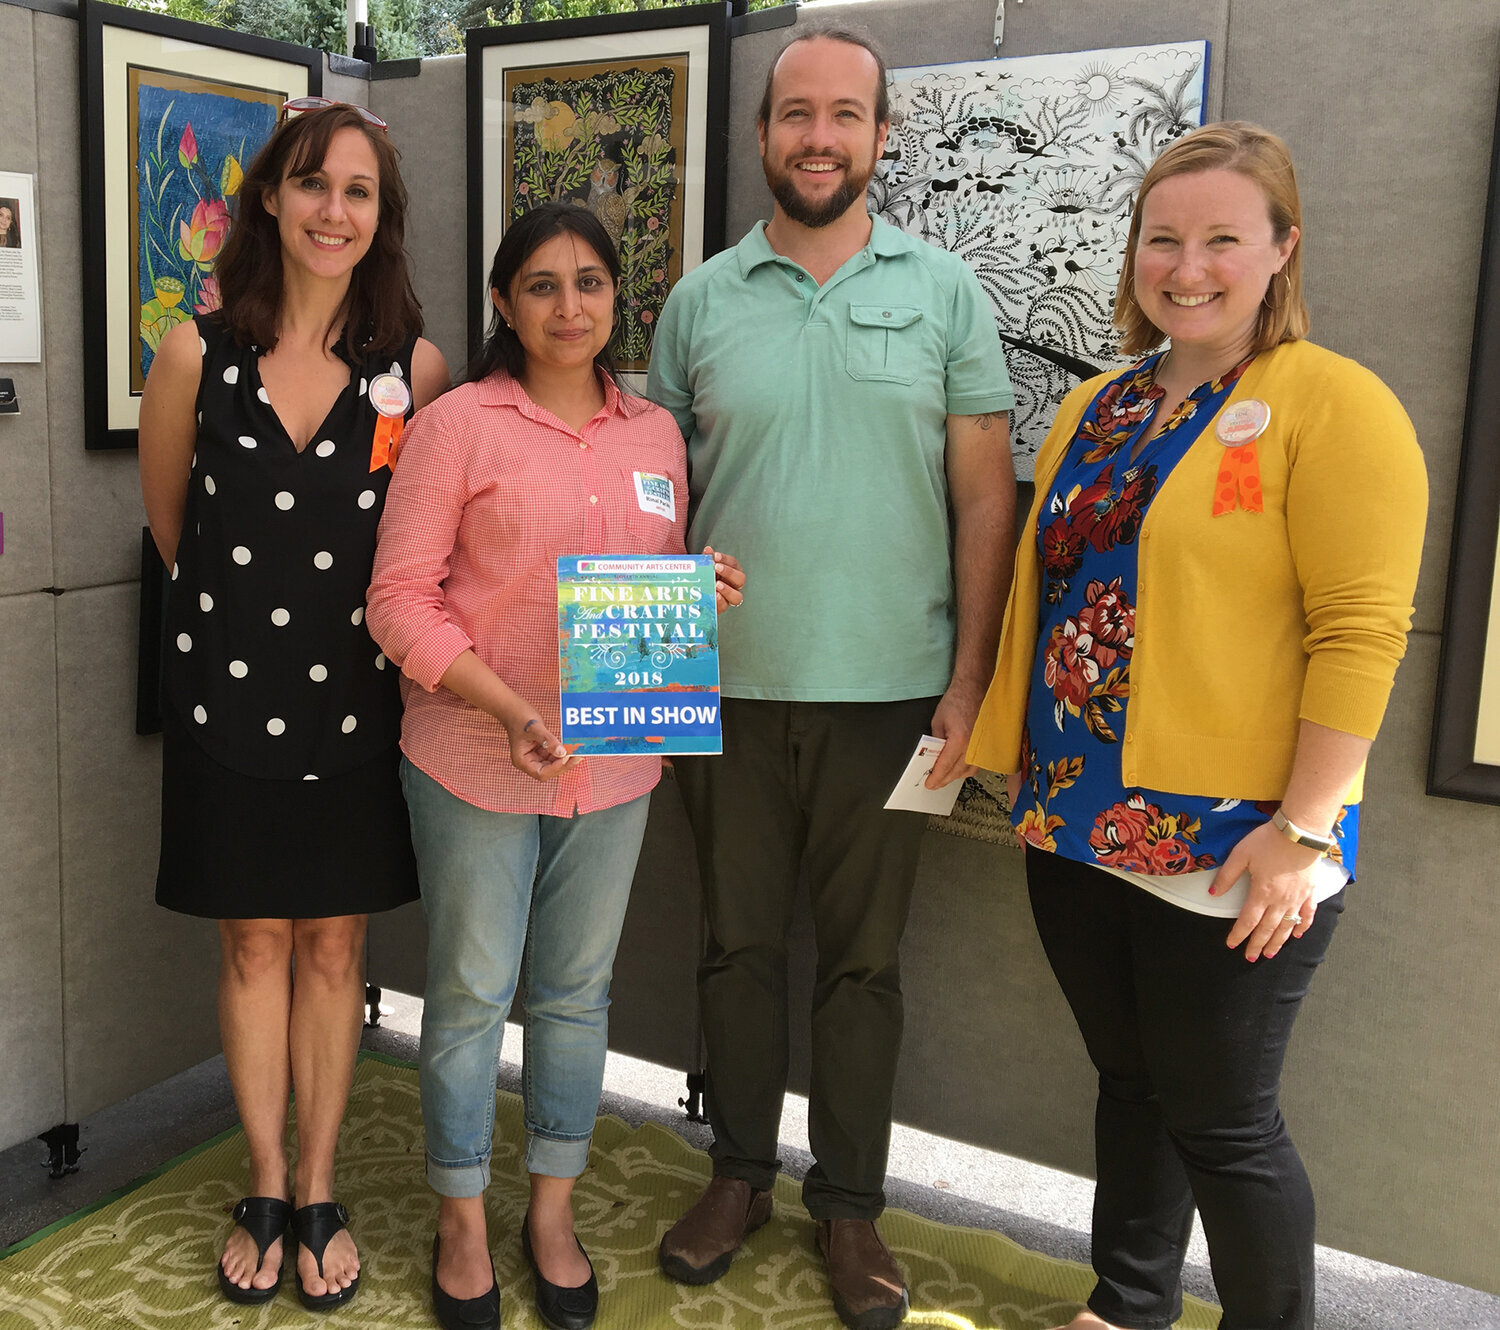 Local artist Rinal Parikh of Wallingford was presented with the Best Show prize by CAC Executive Director Paul Downie and festival judges Susanna Gold and Caitlin Flaherty at the 2018 Fine Arts and Crafts Festival.